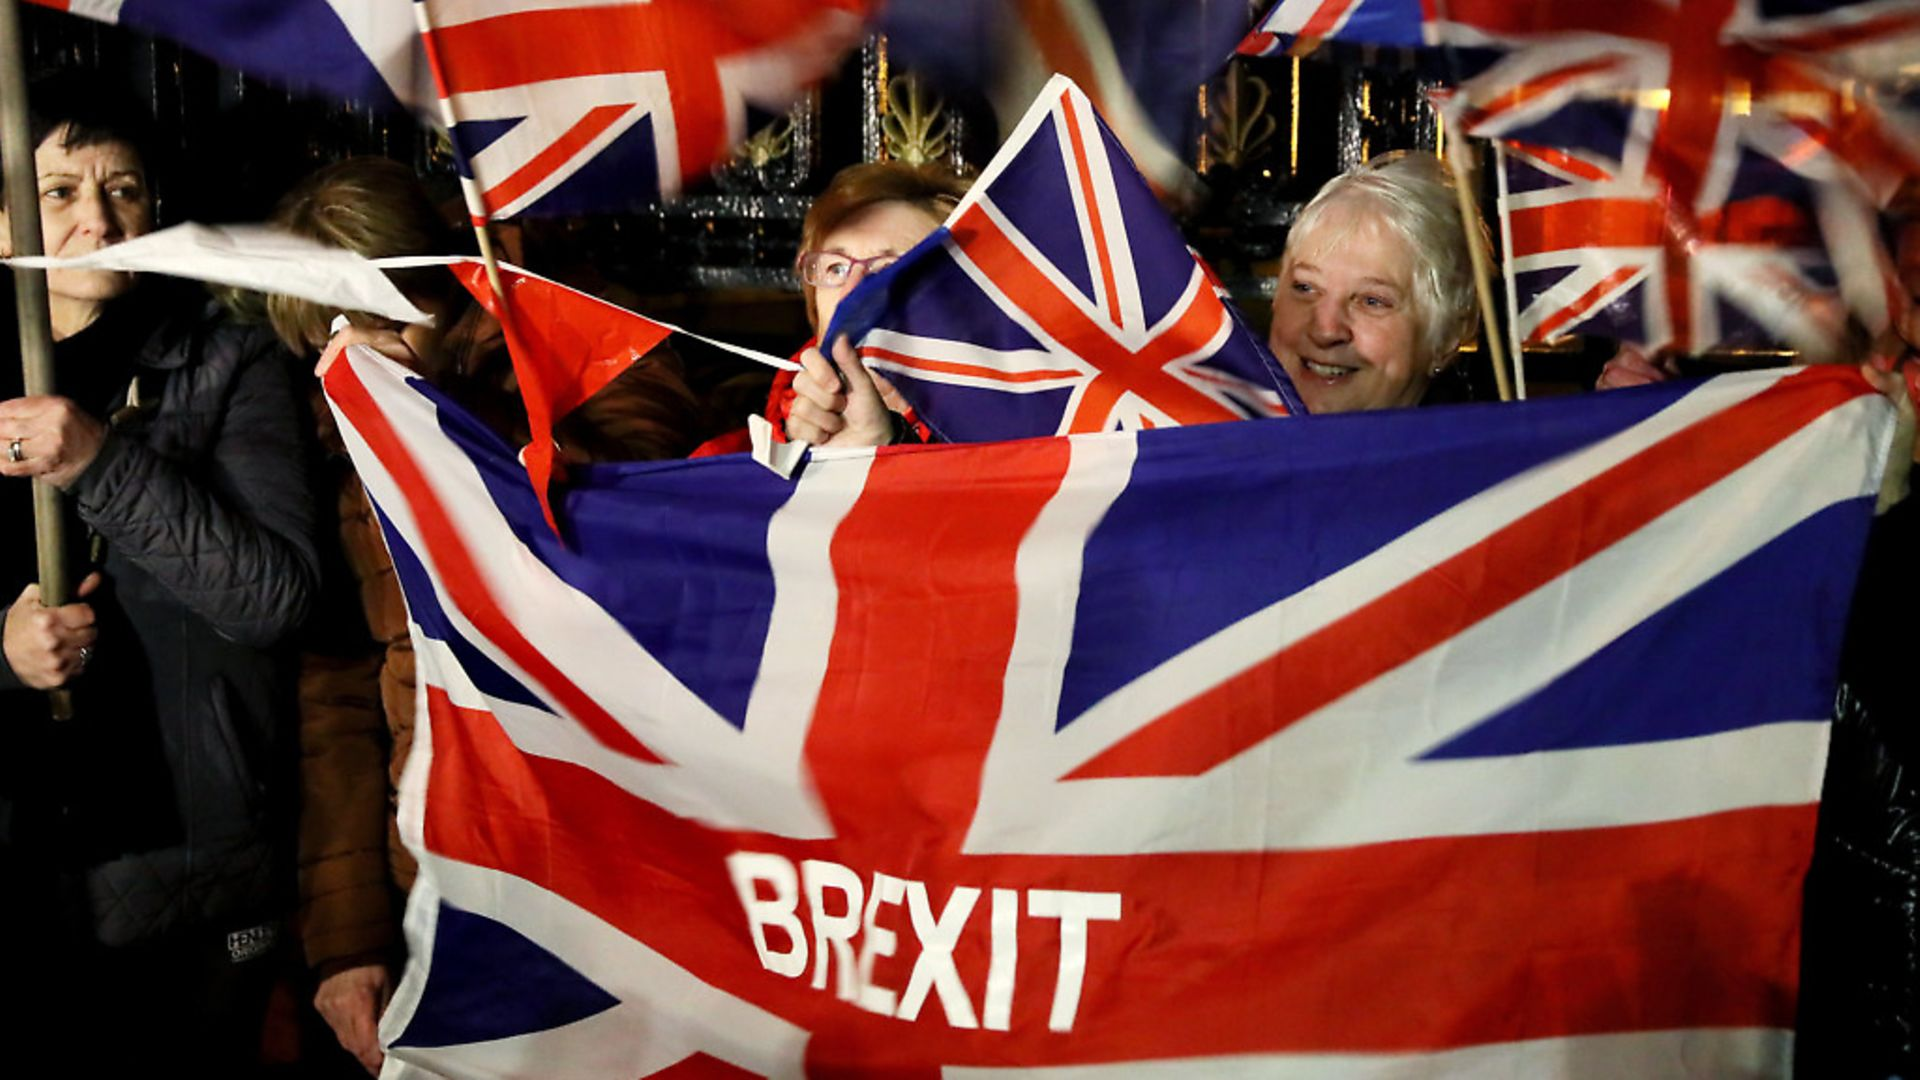 Pro-Brexit supporters gather to celebrate as the UK prepares to leave the European Union. Photograph: United Kingdom/PA. - Credit: PA